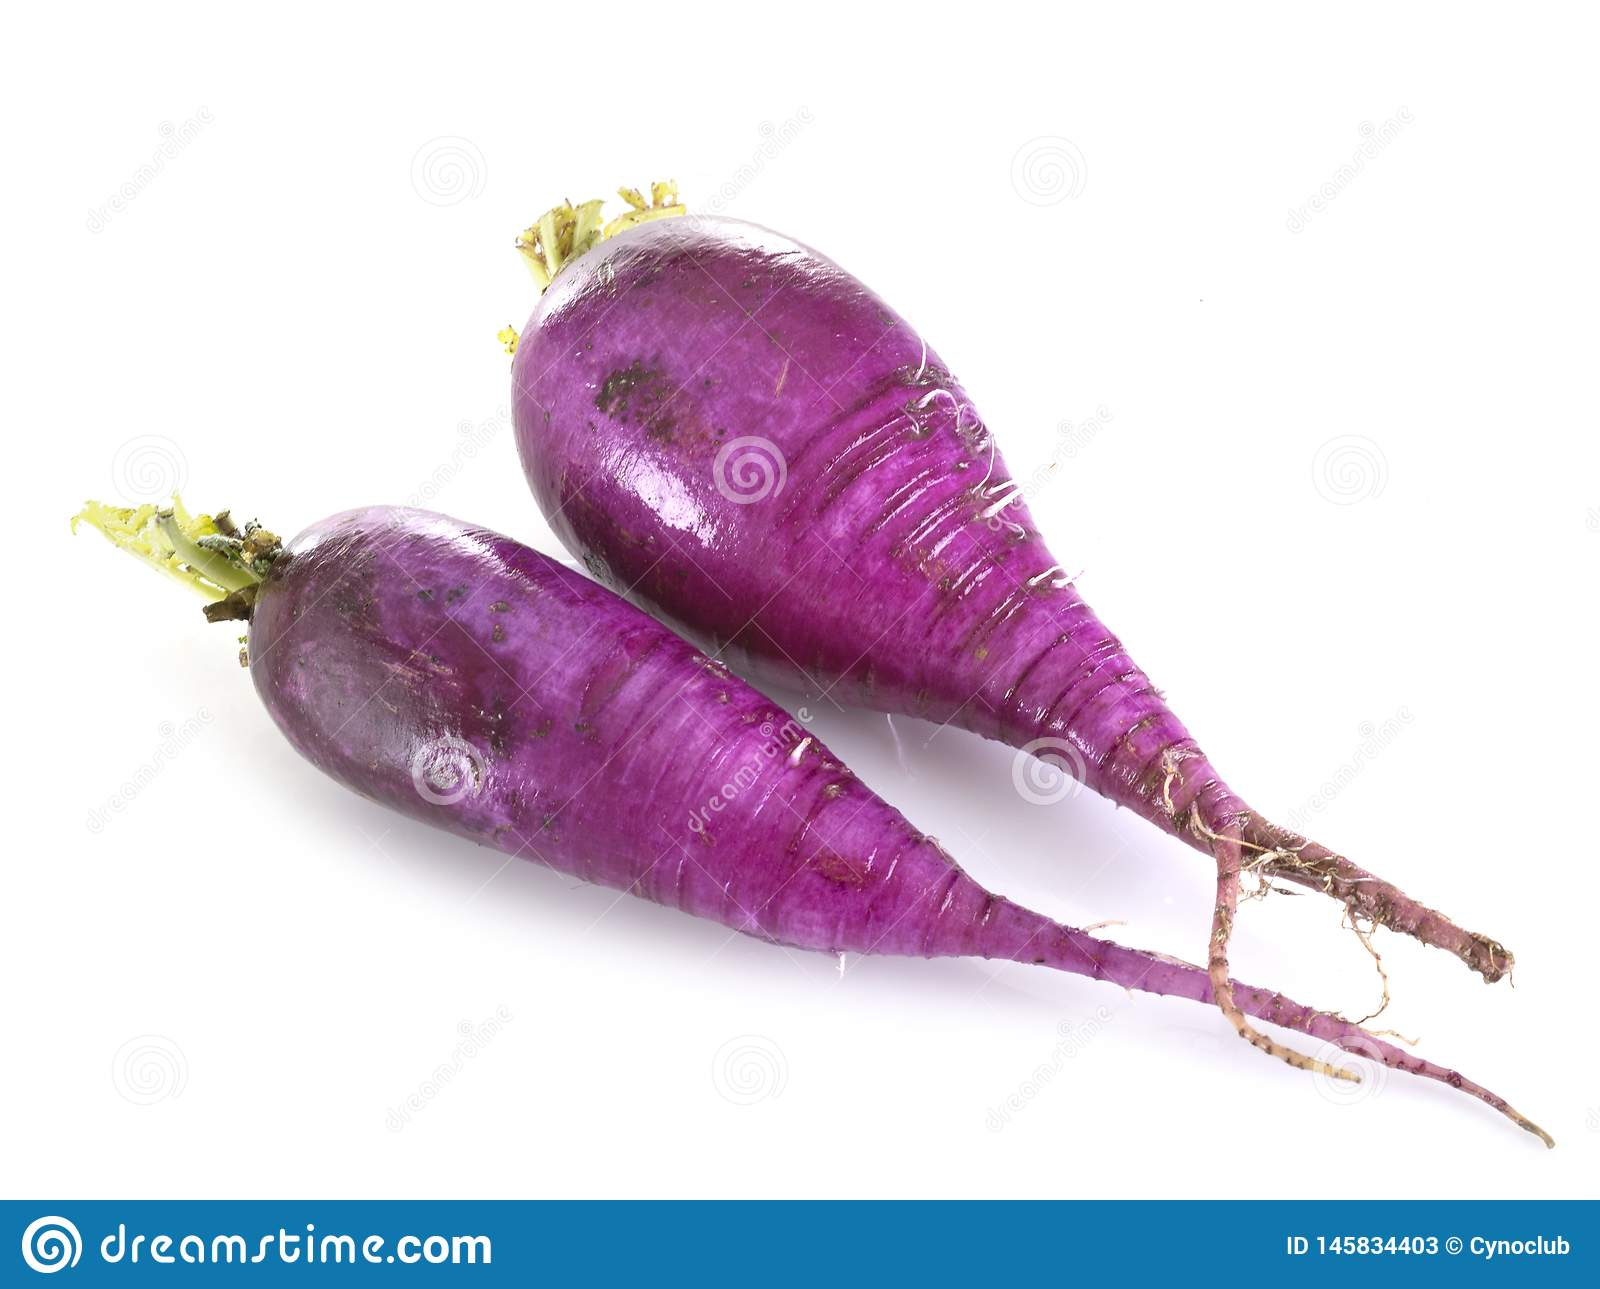 Purple radish in studio